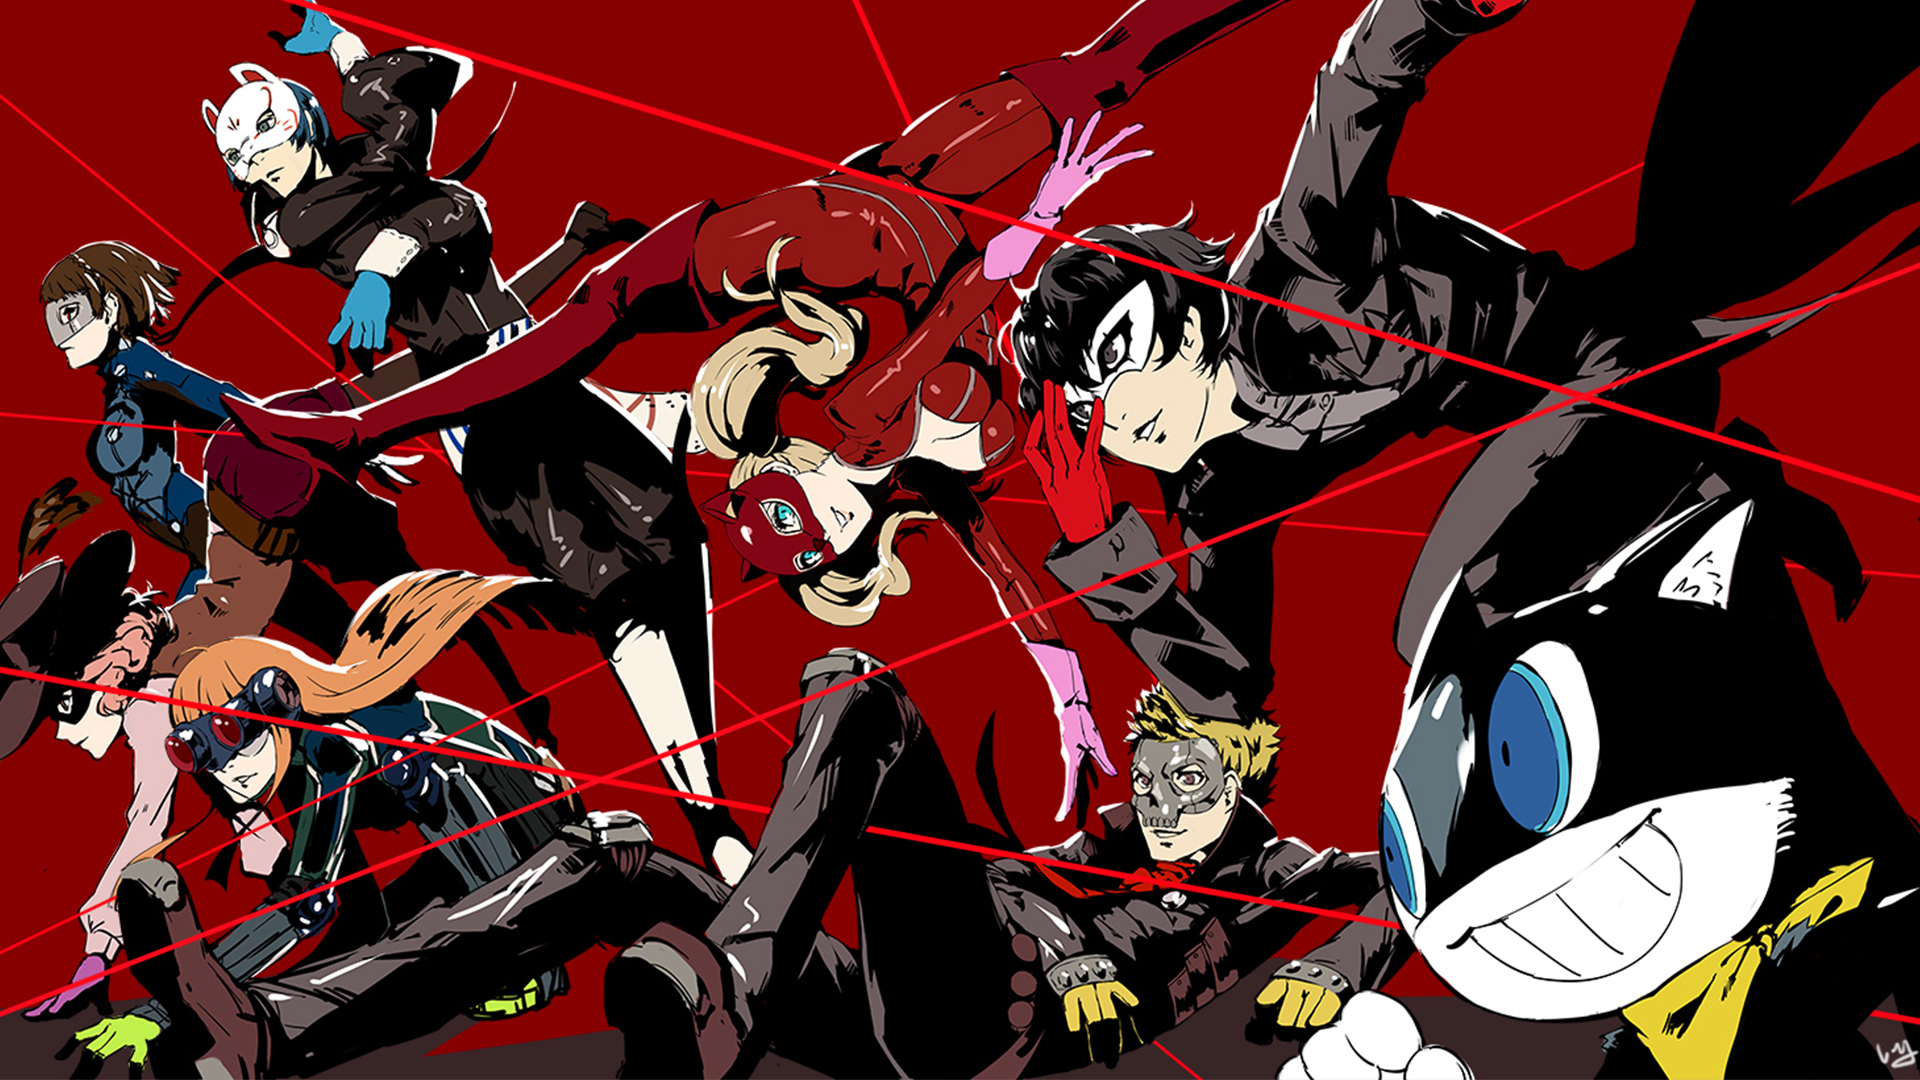 Persona 5 Party Hd Wallpaper Background Image 1920x1080 Id 917137 Wallpaper Abyss